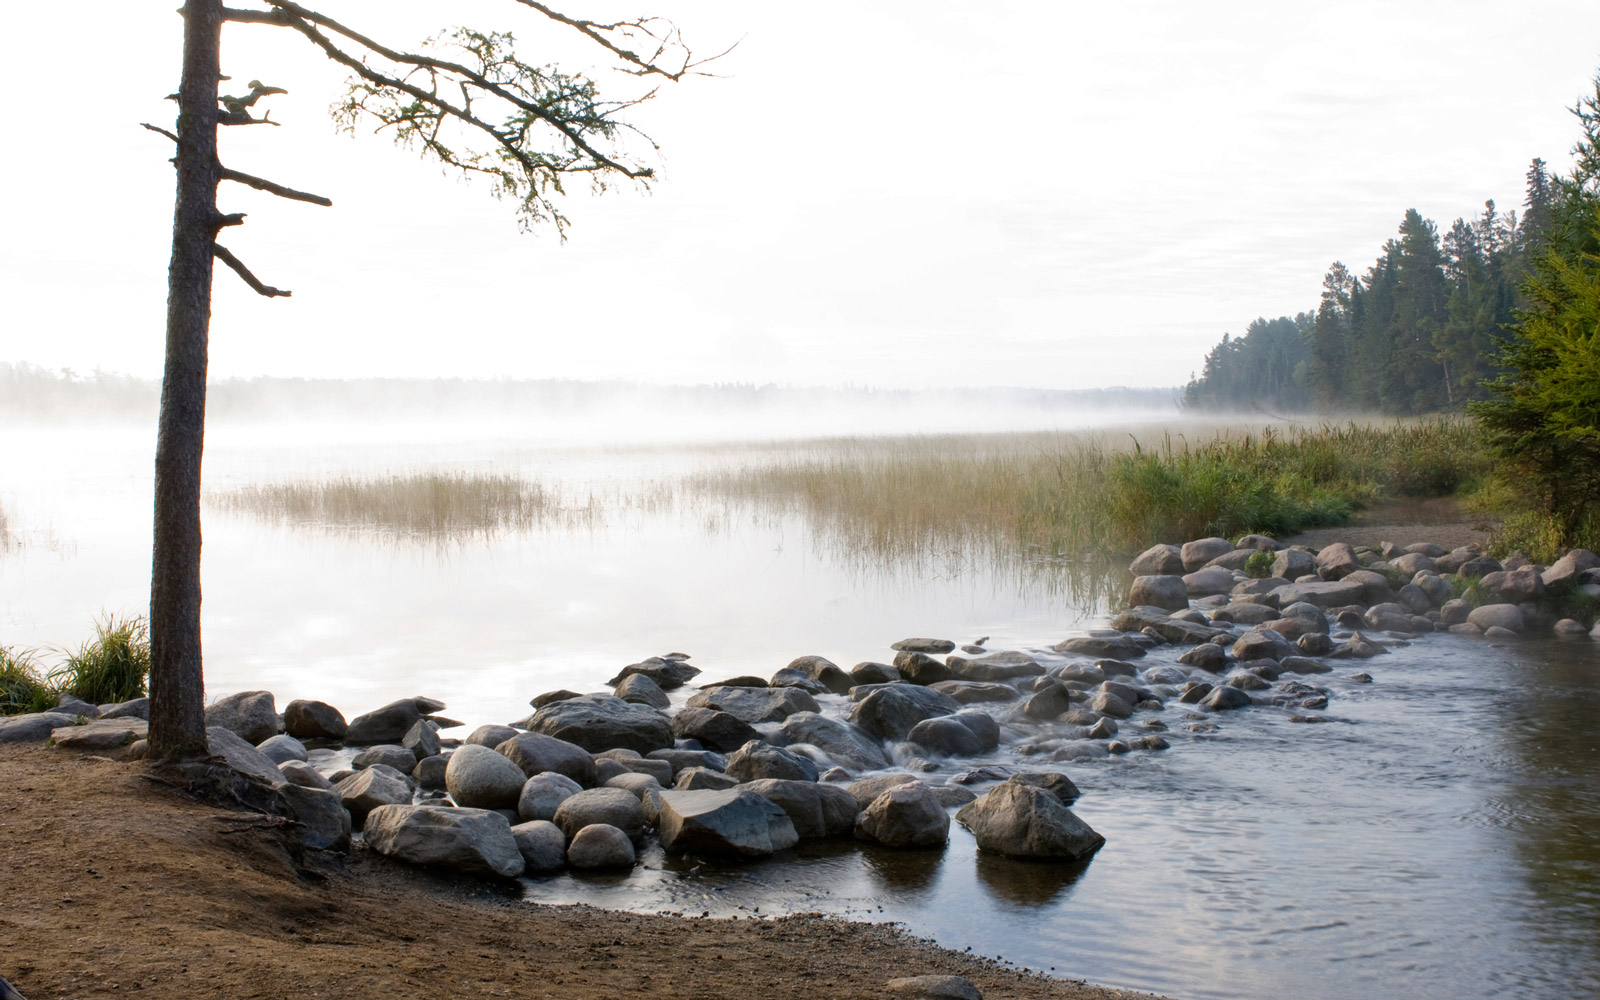 The headwaters of the Mississippi River are clearly defined by a 44-foot-long (13 m) long outlet dam at the north end of Lake Itasca. This setup allows tourists to wade in shallow water or walk across the rocks connecting the sides of the Mississippi. The